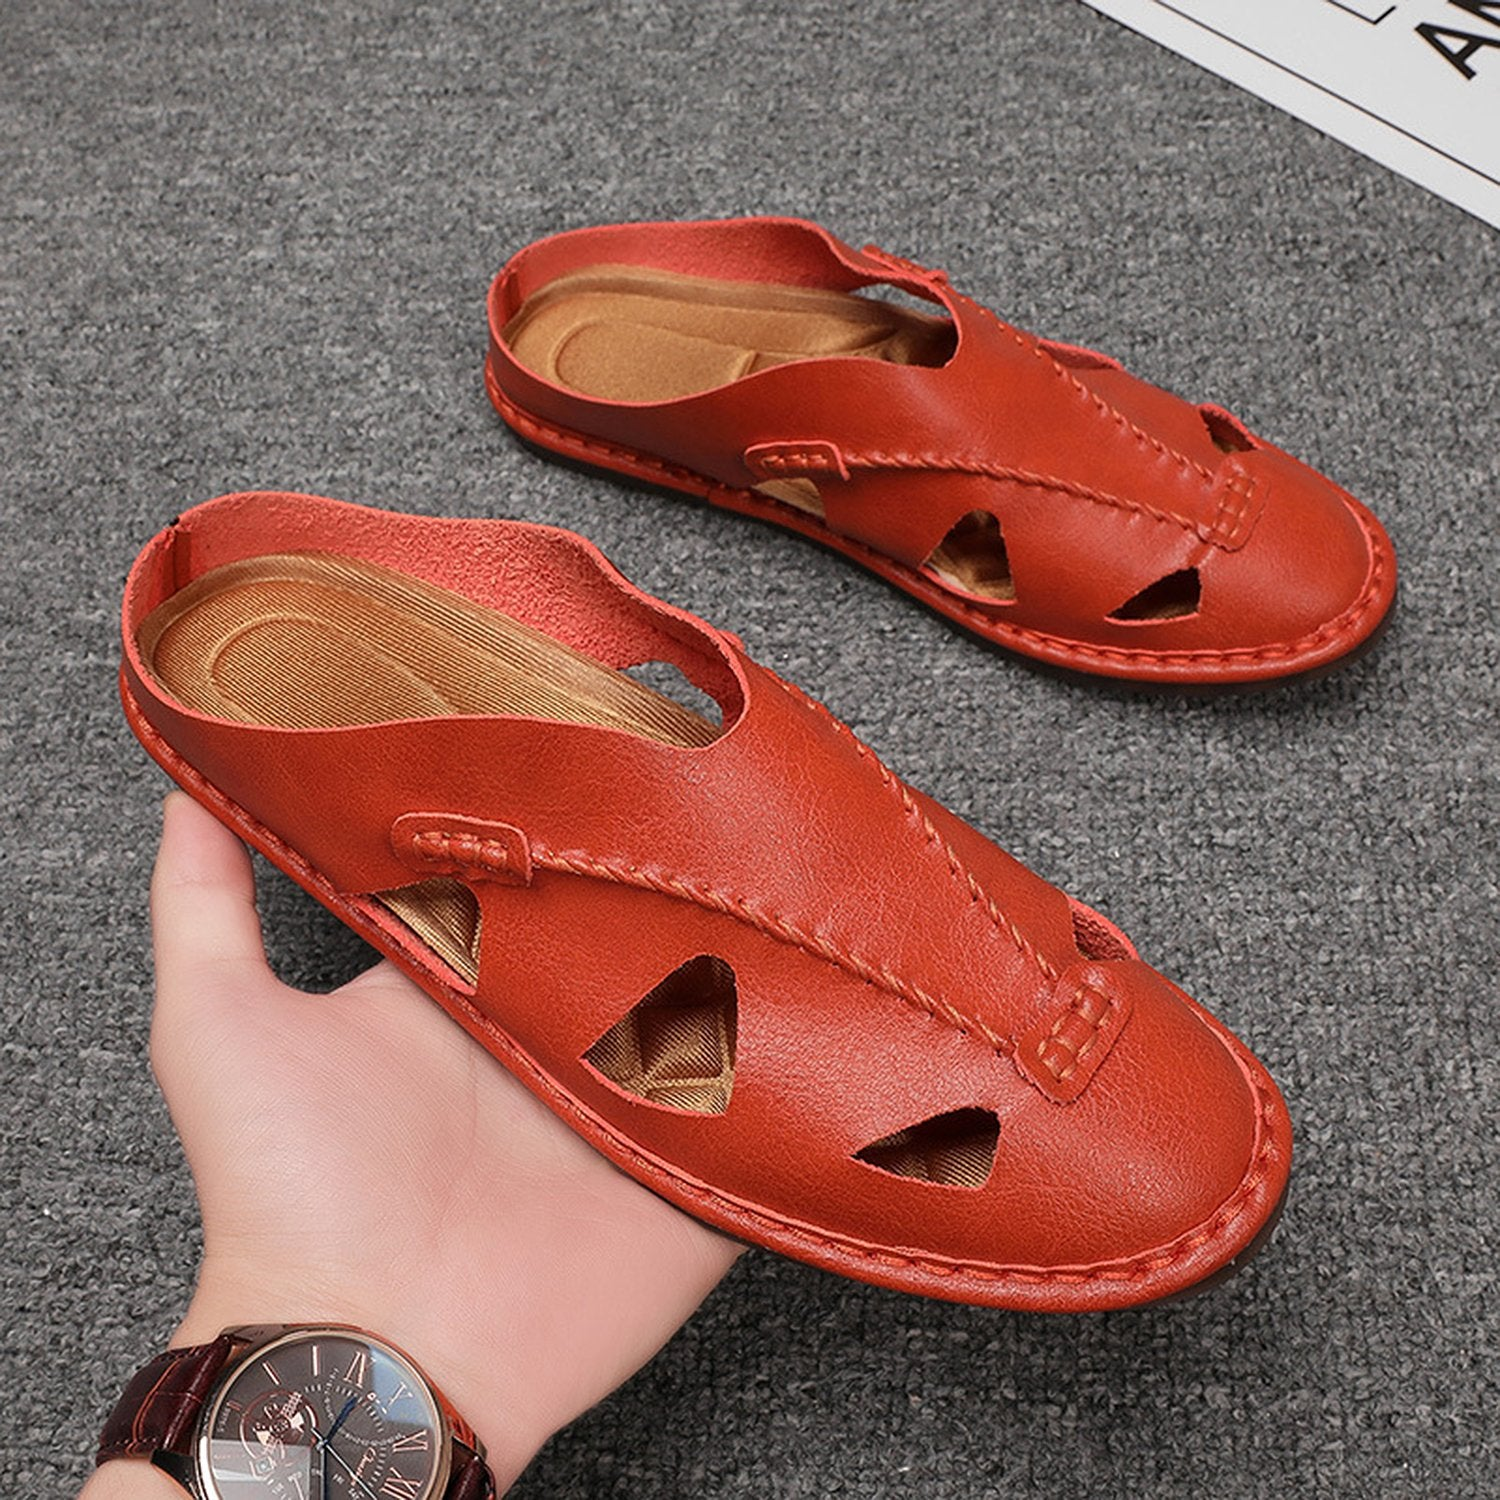 Men's V-shaped Leather Mules